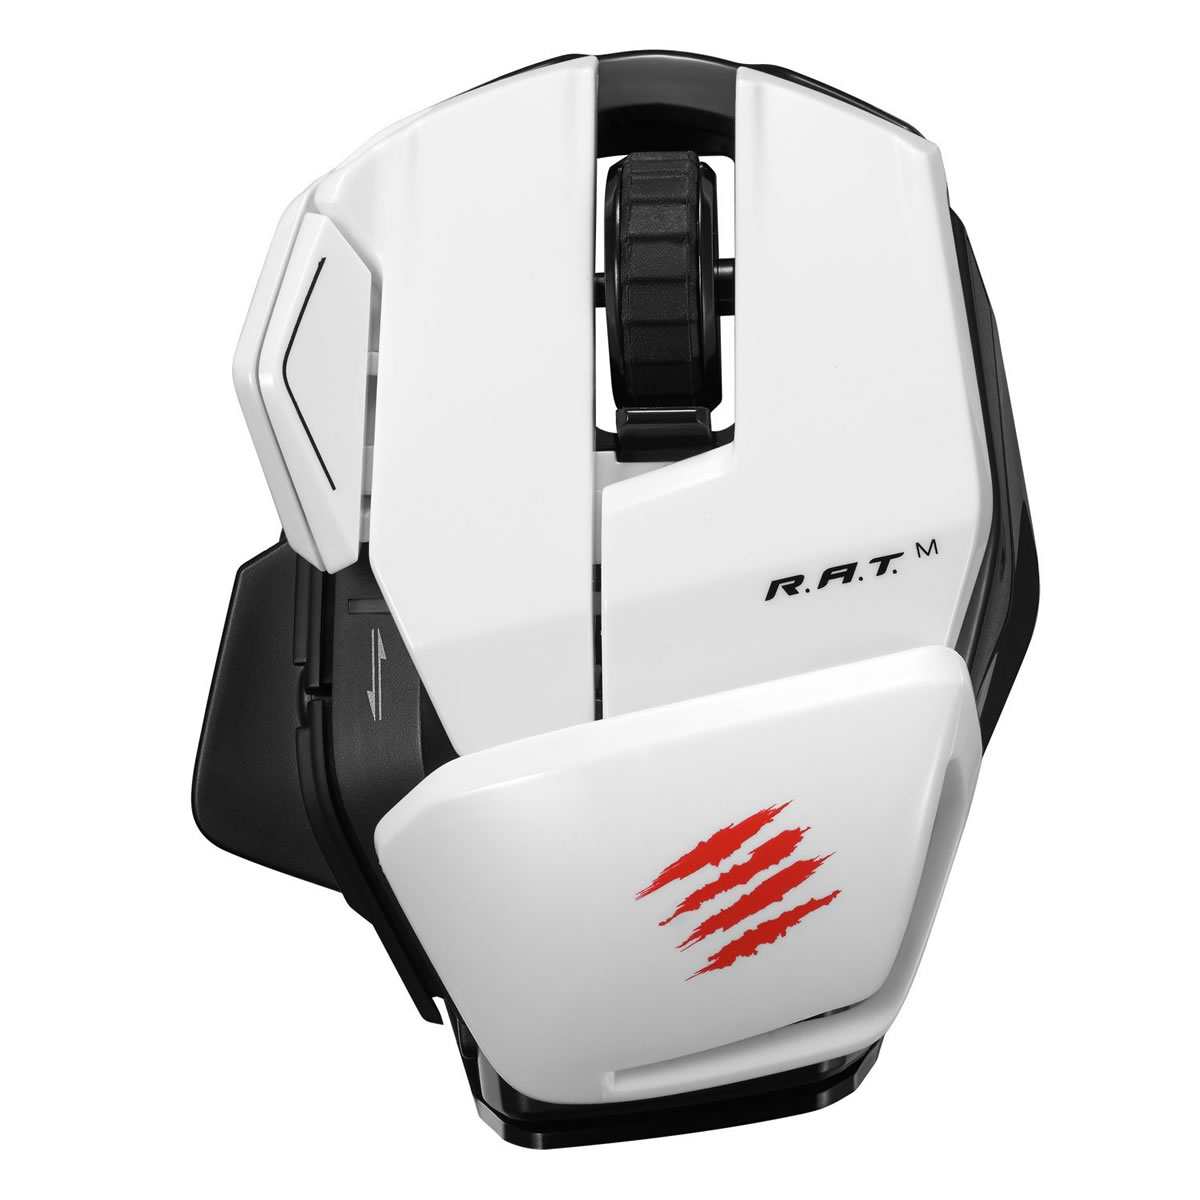 MAD CATZ OFFICE RAT M - WHITE (PC, ANDROID)